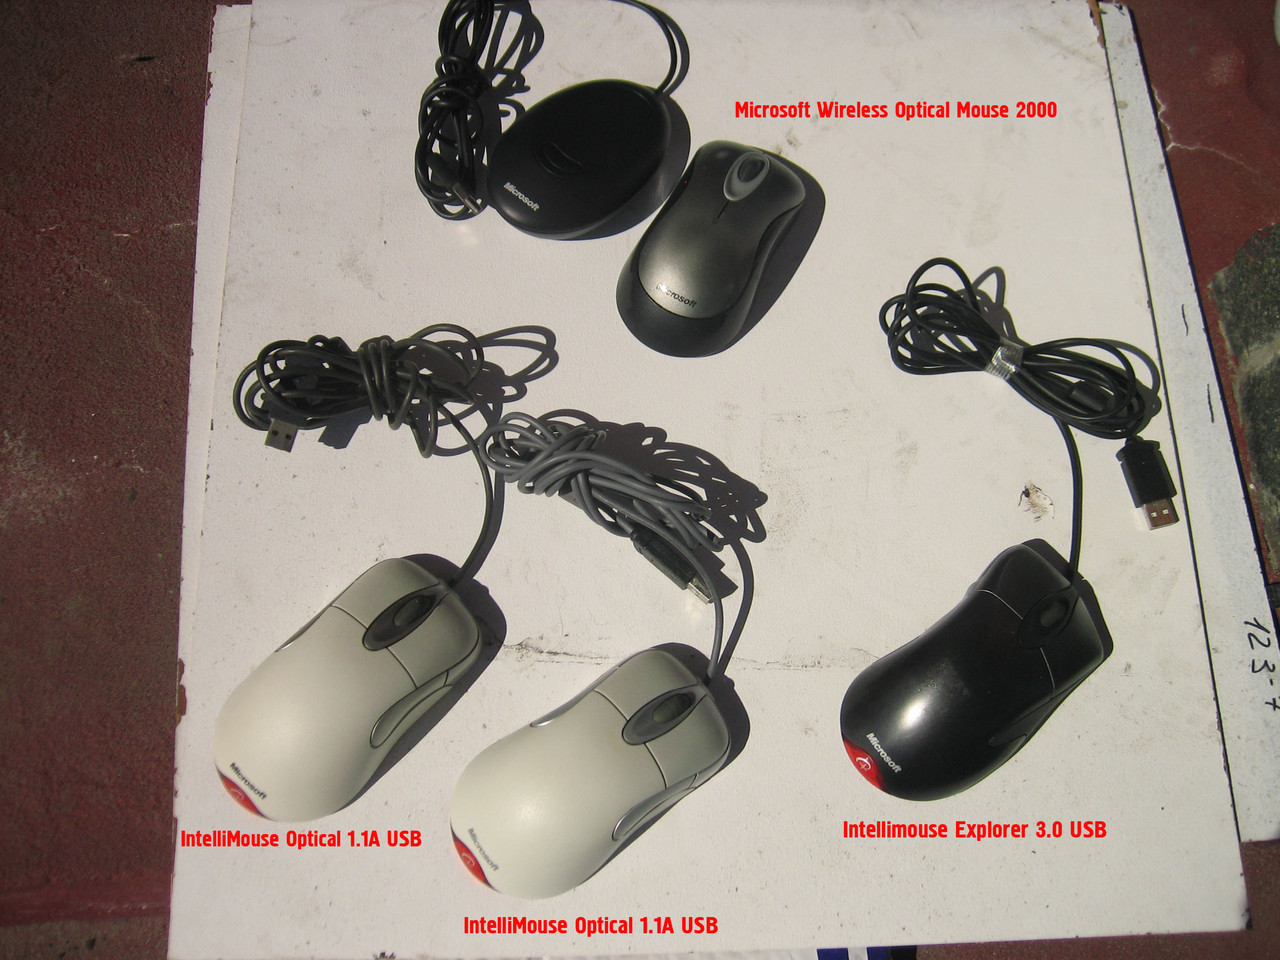 INTELLIMOUSE OPTICAL 1.1A USB DRIVERS FOR WINDOWS MAC